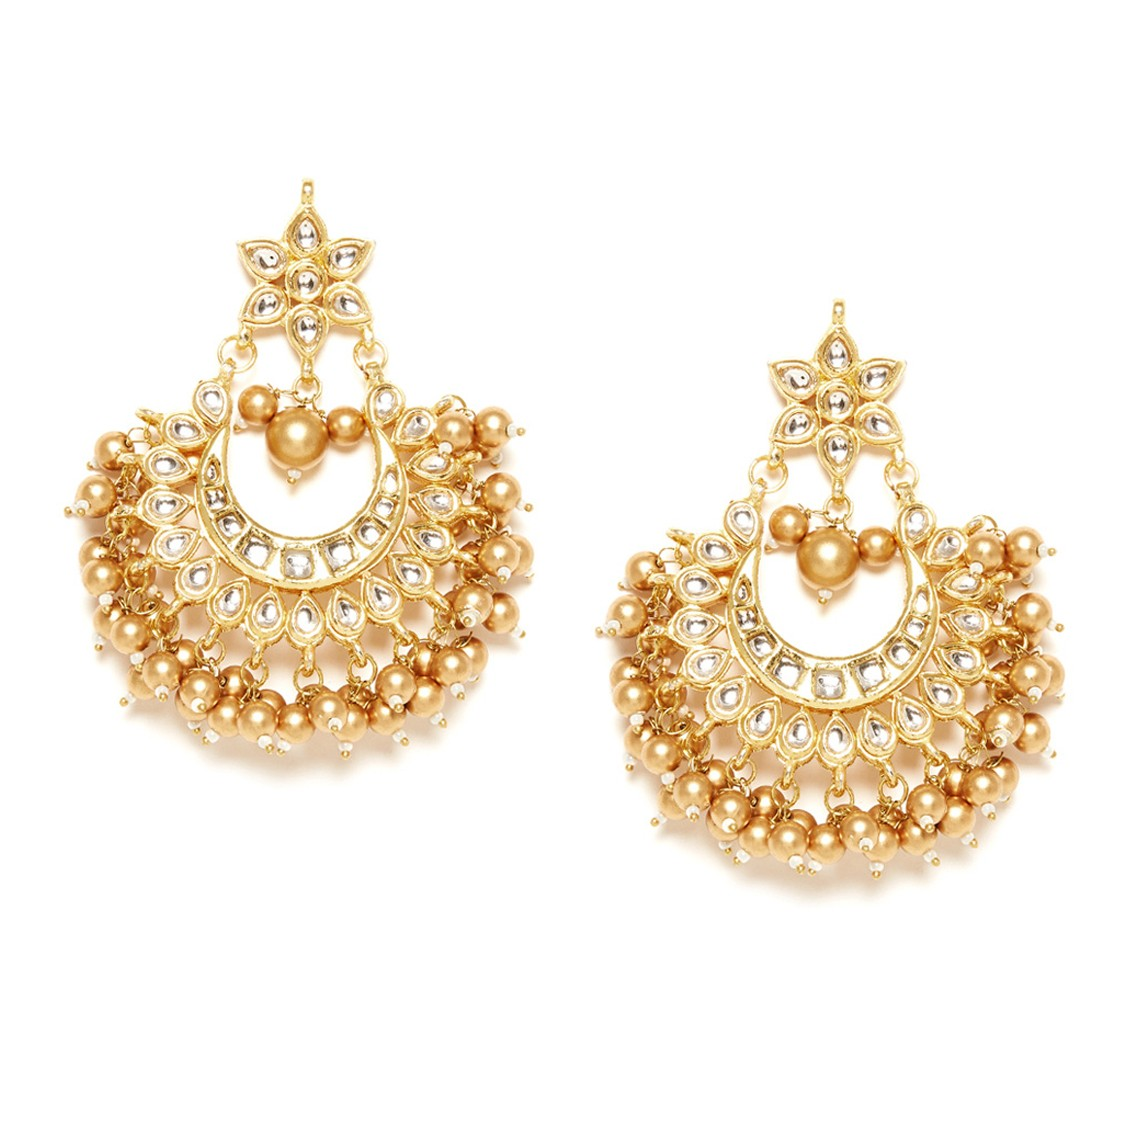 Kundan Earrings Flower Design Golden Color For Woman & Girls